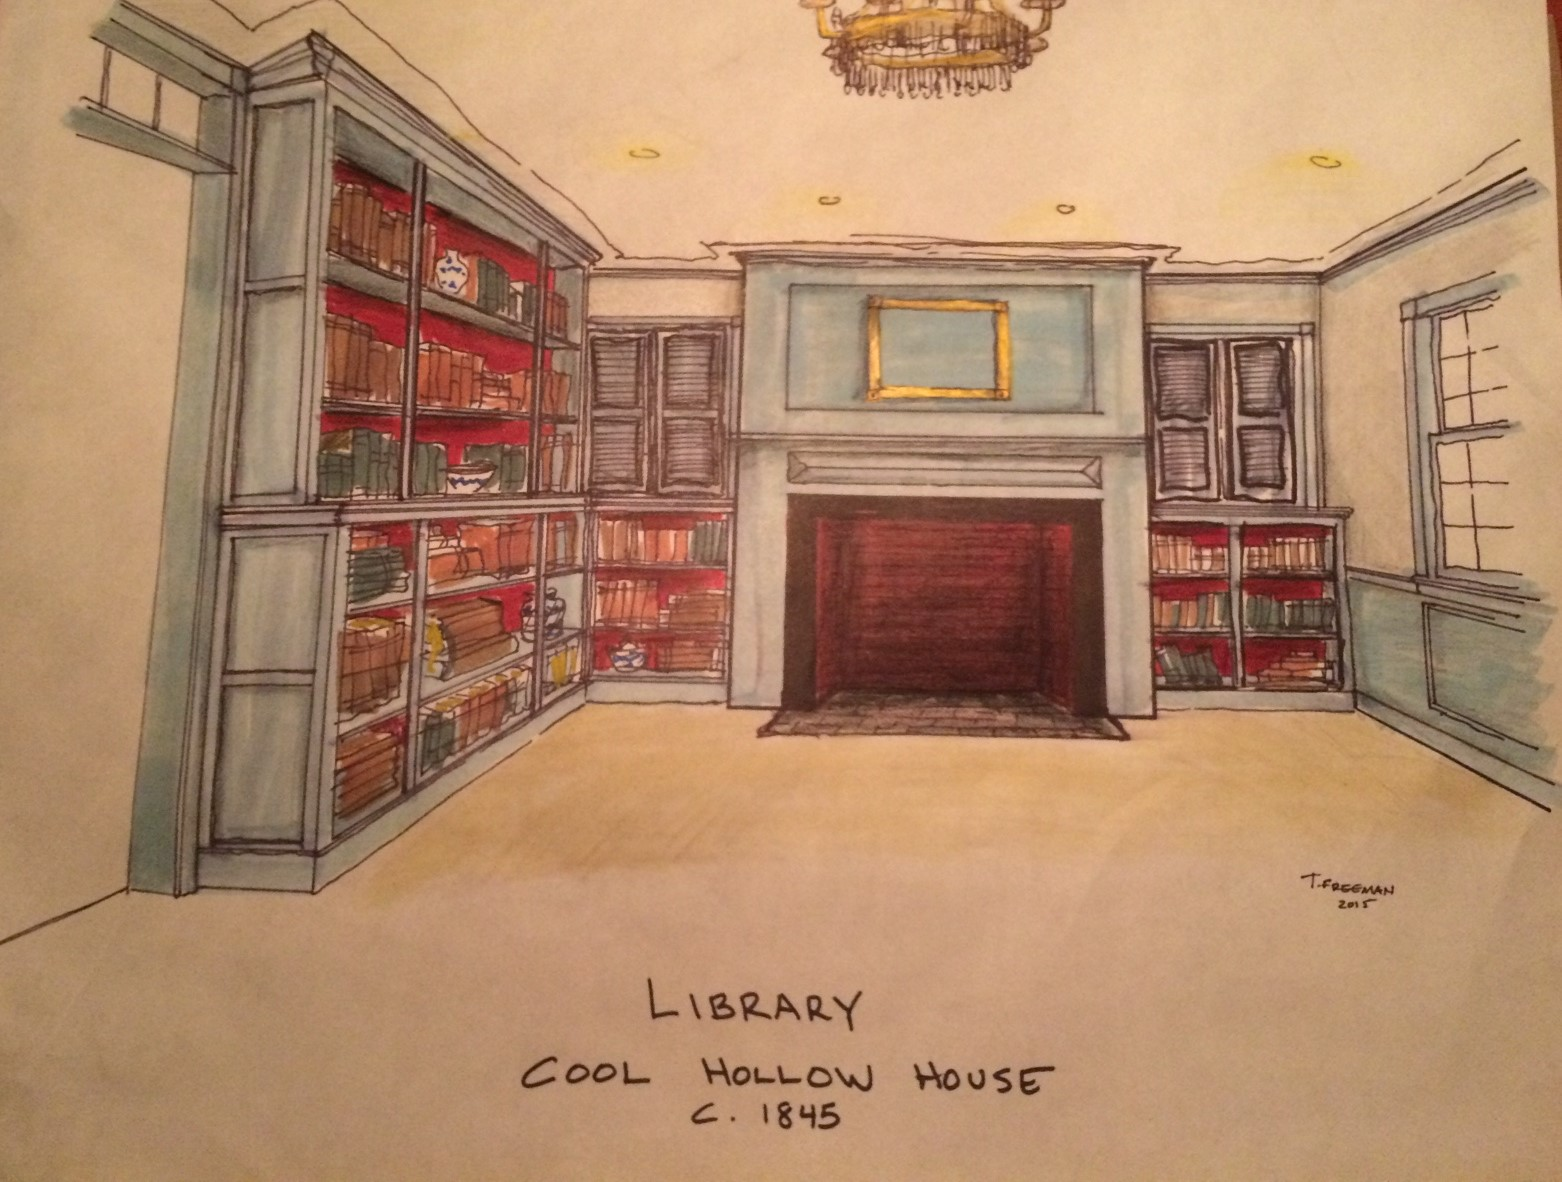 Sketch I did for the original concept of the library that occupies the space of the original c.1820 kitchen